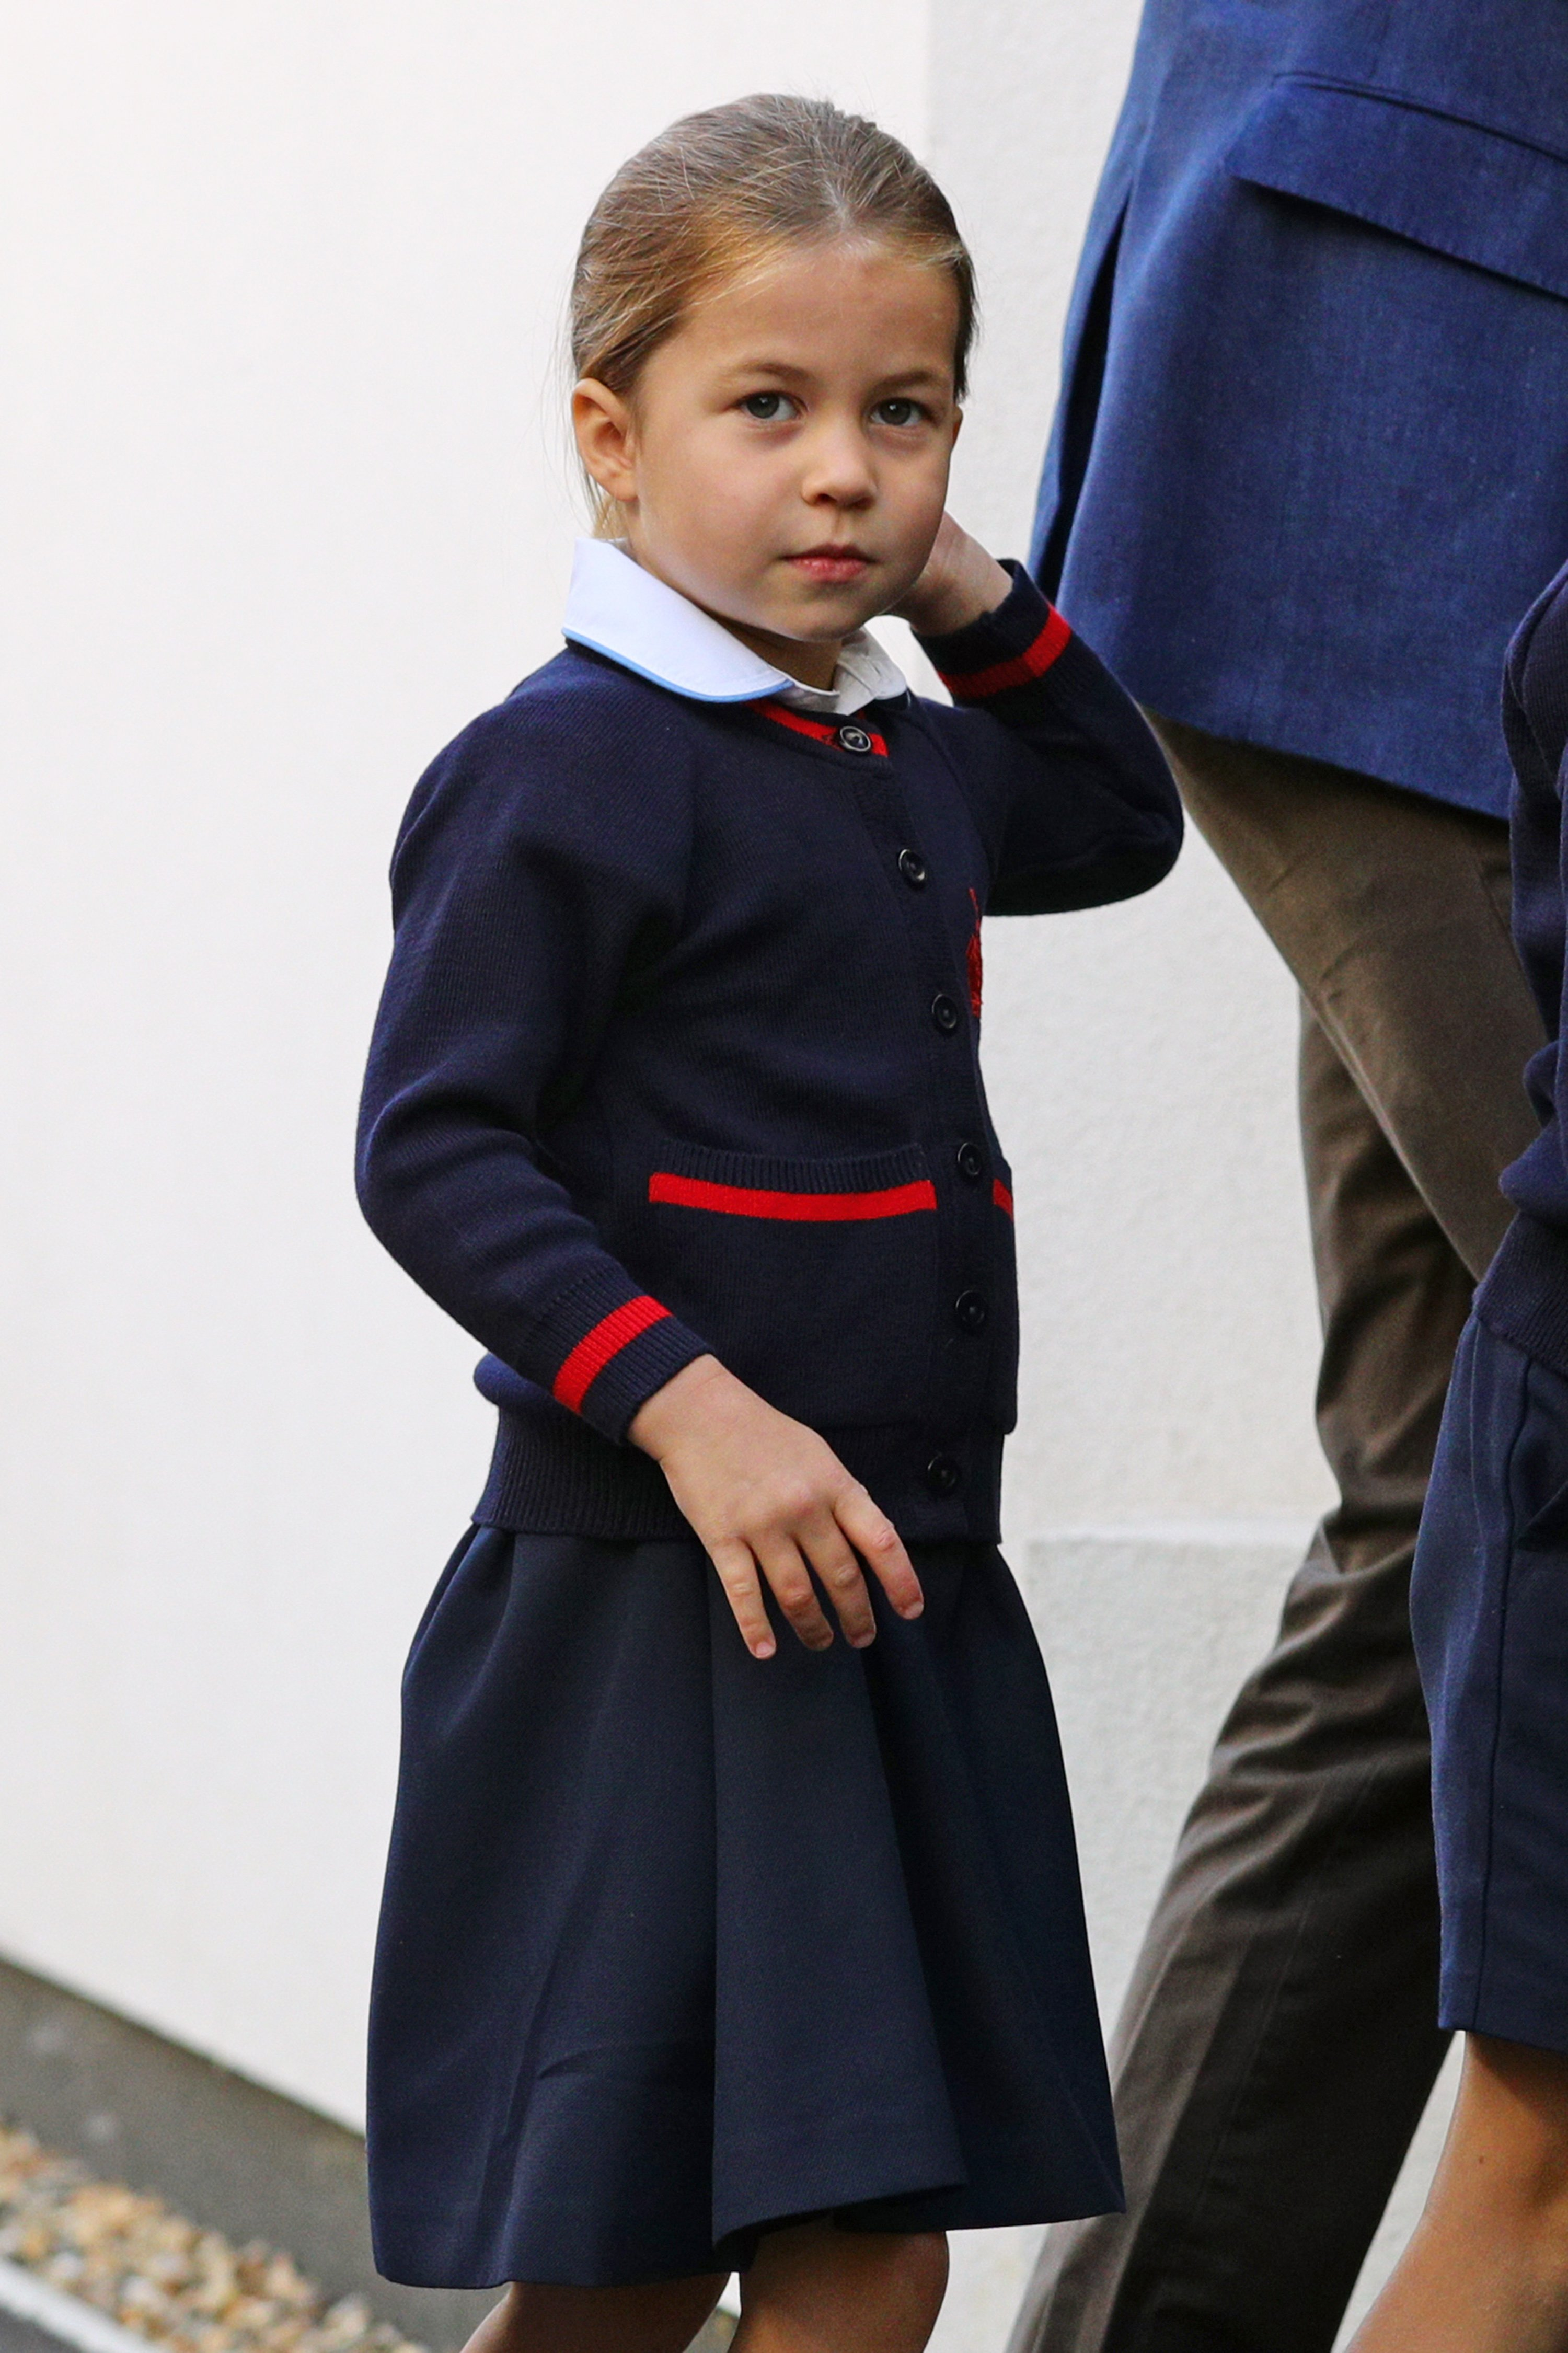 Princess Charlotte arrives for her first day of school at Thomas's Battersea in London on September 5, 2019 | Photo: GettyImages